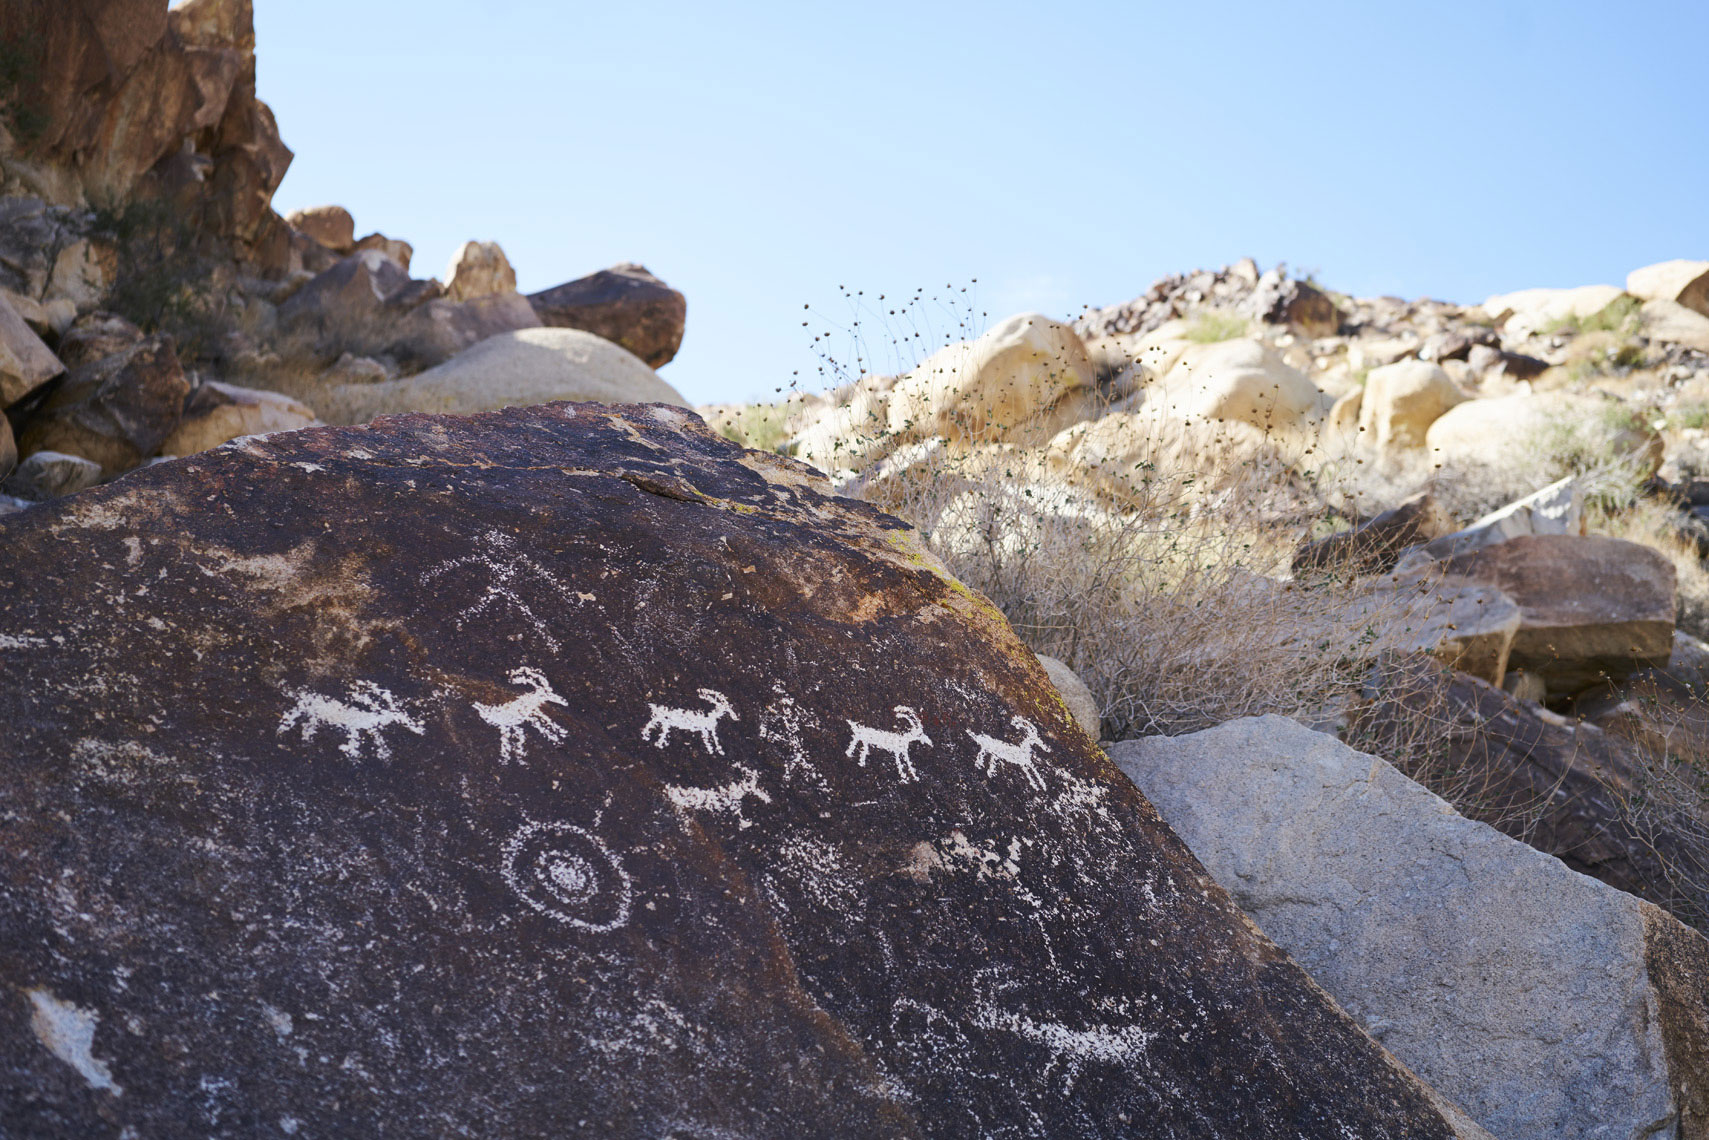 Petroglyphs dated from 1100AD to 1900AD on a rock off Christmas Tree Pass near Grapevine Canyon Laughlin, Nevada  Sean Dagen Photography